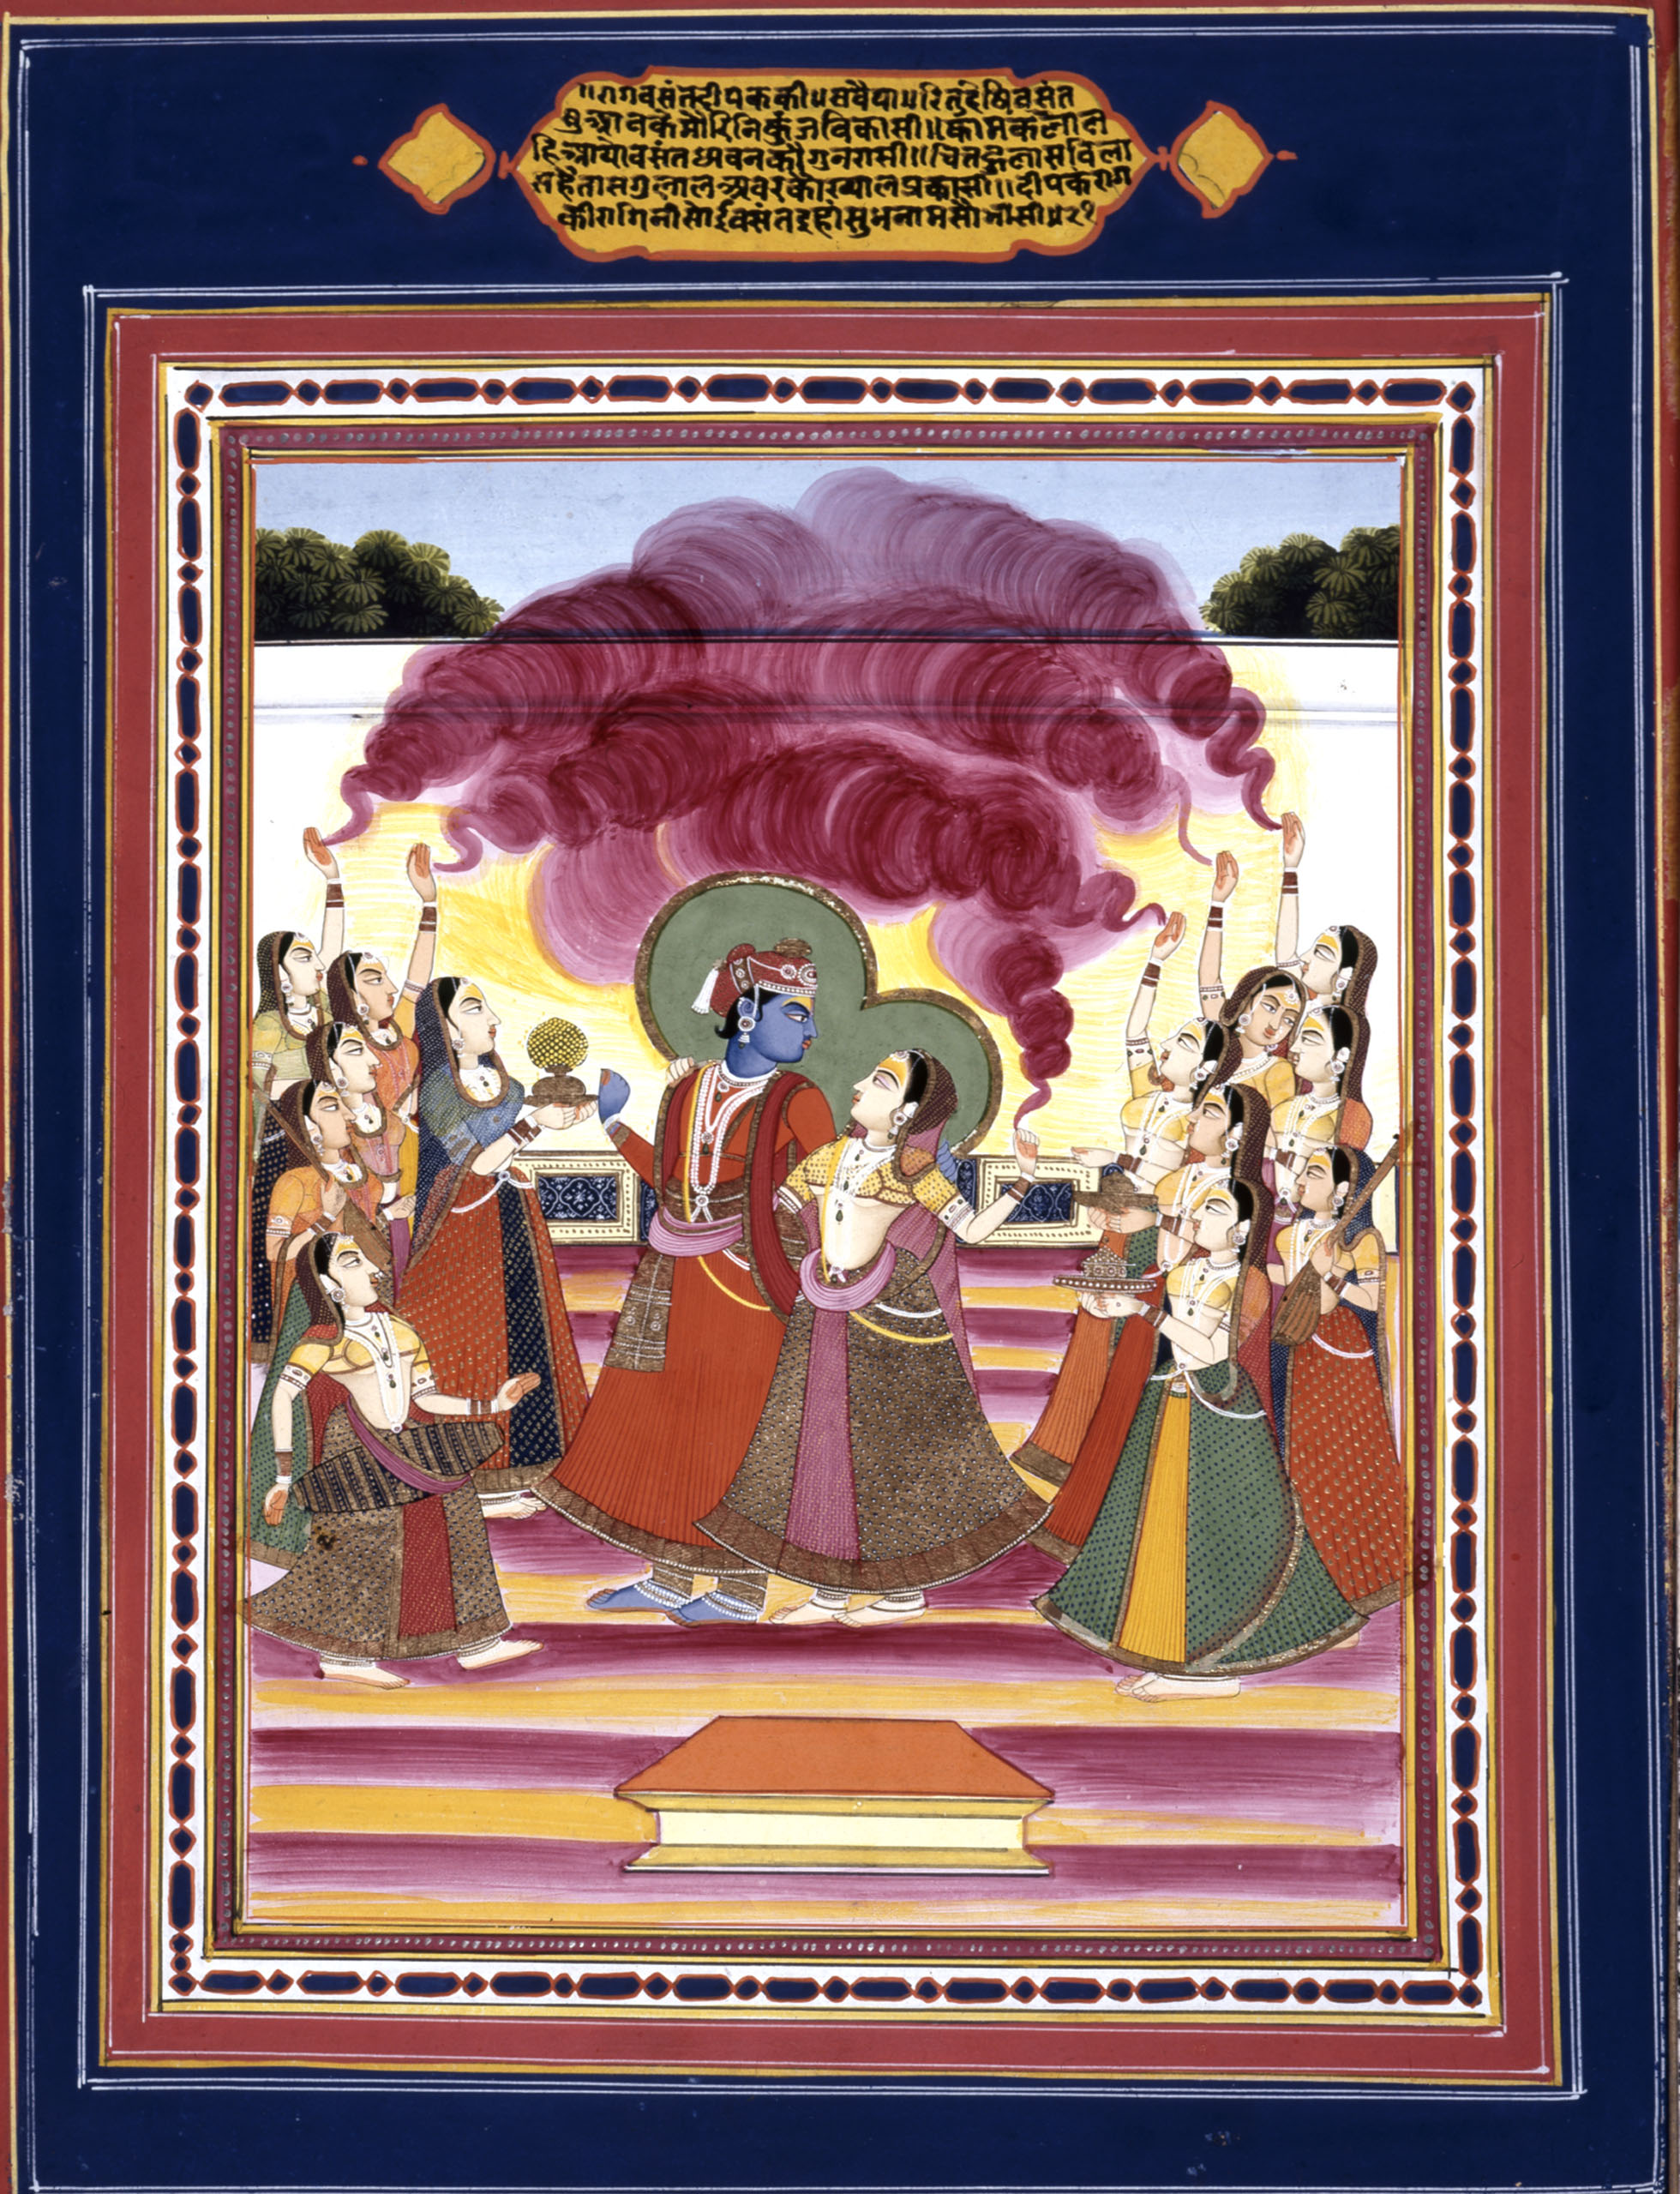 festival-of-color-krishna-radha.jpg